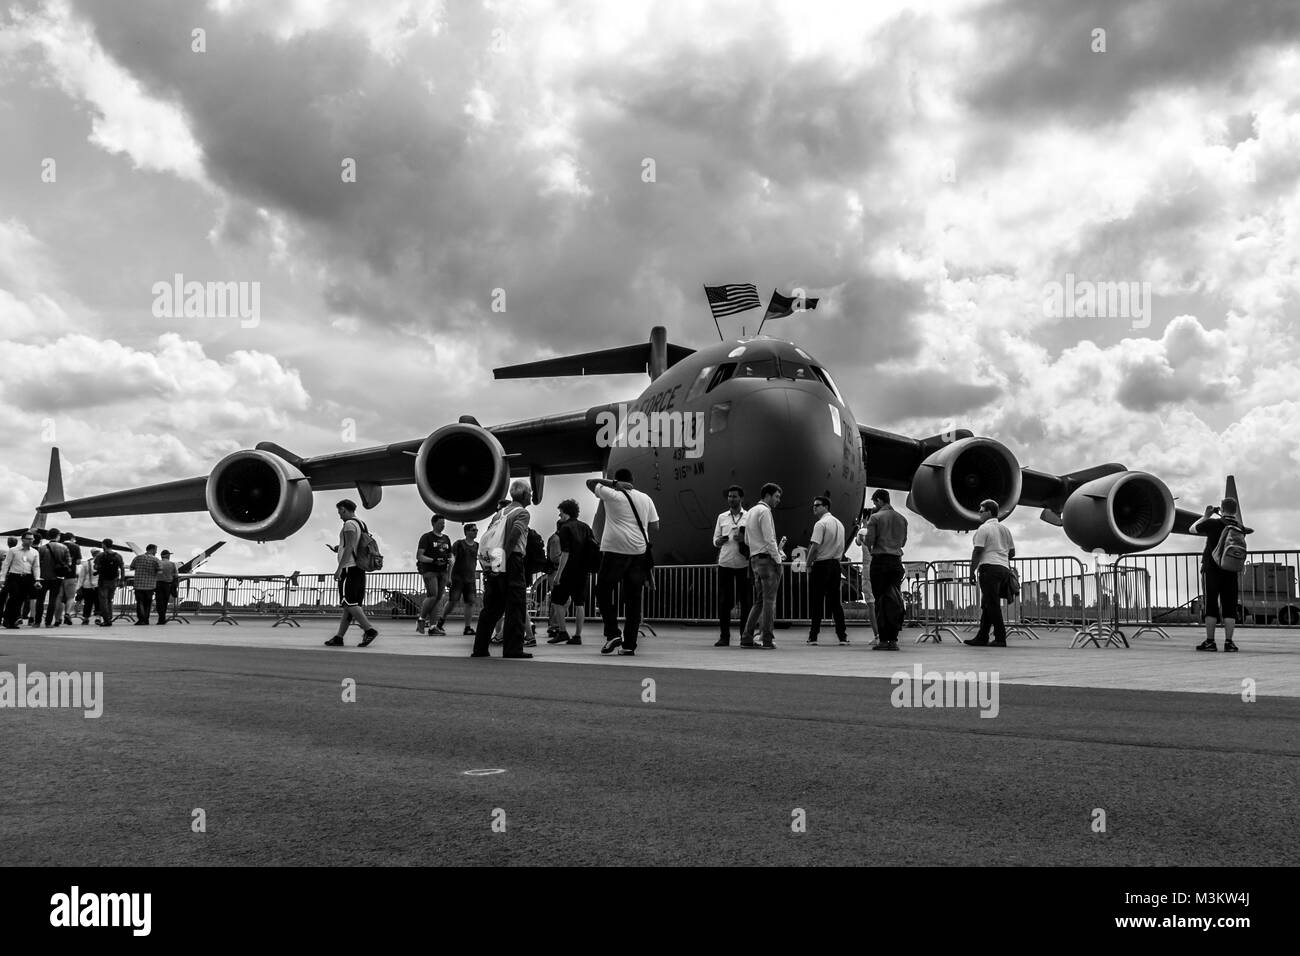 BERLIN, GERMANY - JUNE 01, 2016: A strategic and tactical airlifter Boeing C-17 Globemaster III. US Air Force. Black - Stock Image